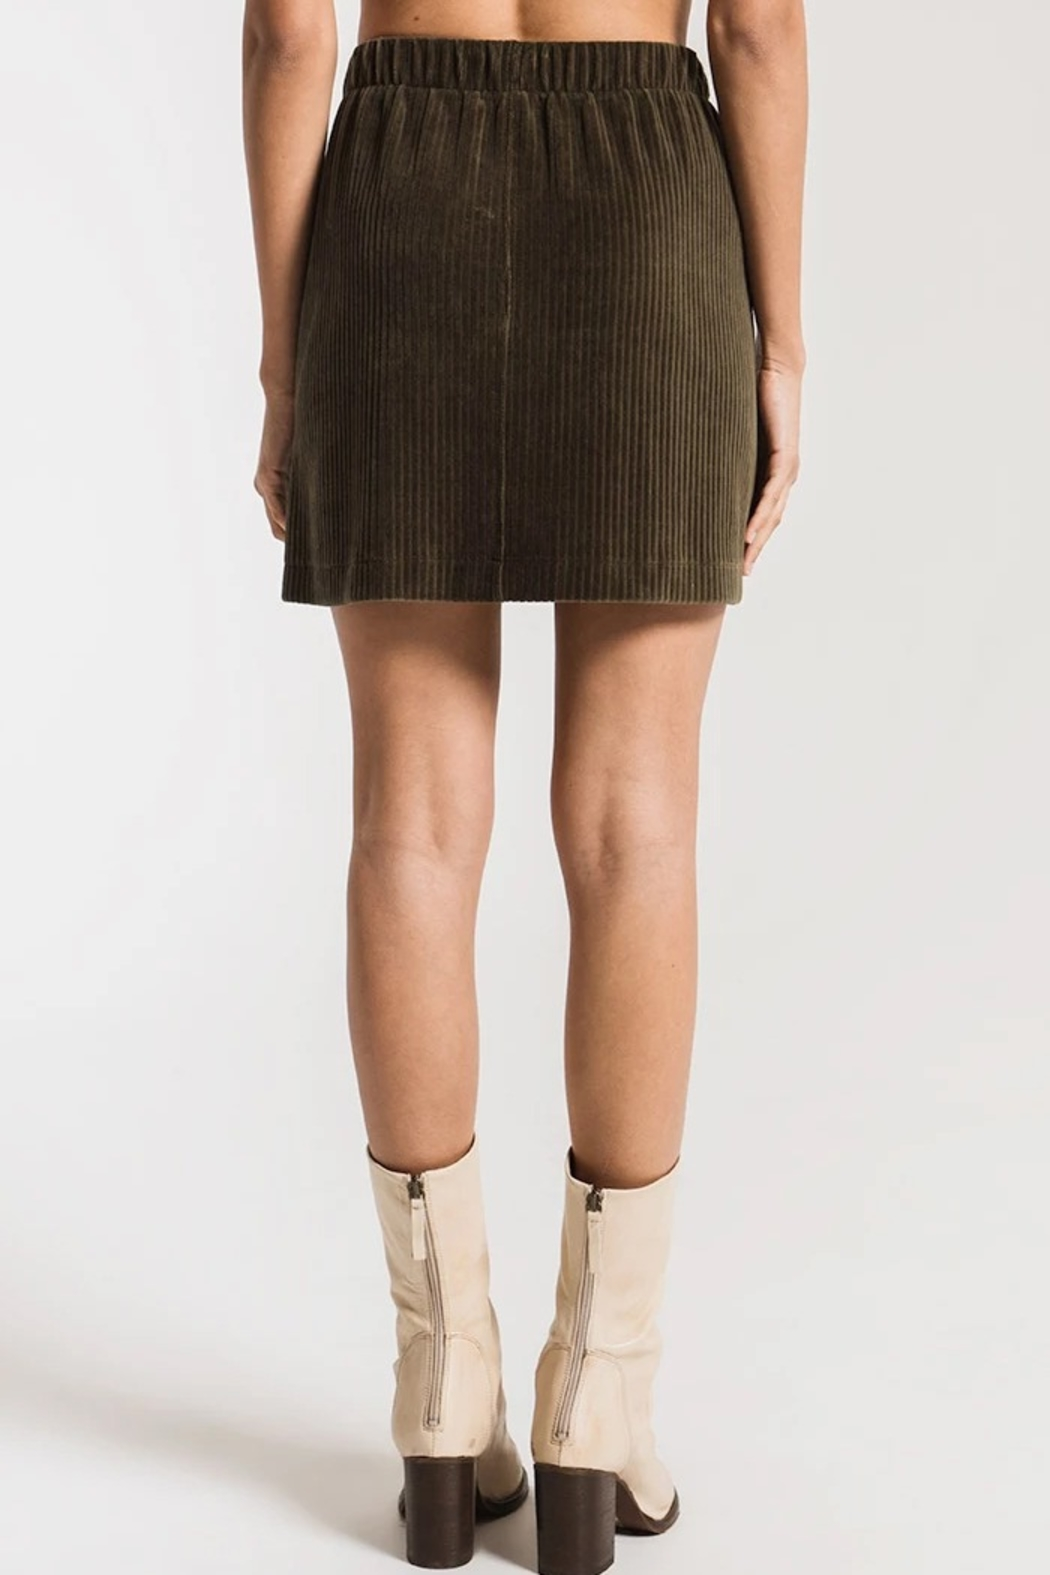 z supply Corduroy Skirt - Side Cropped Image